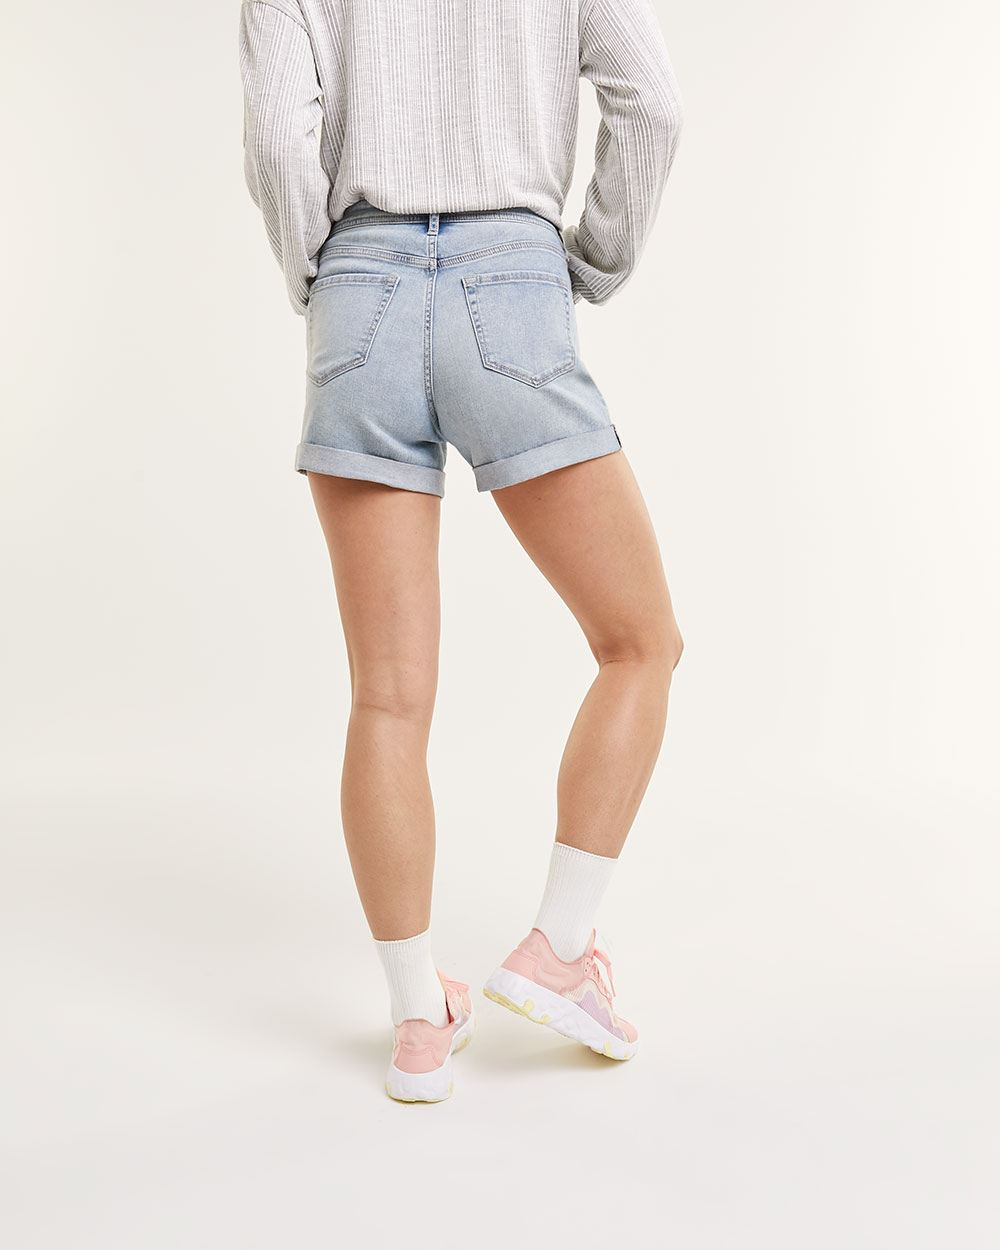 Light Wash Jeans Shorts